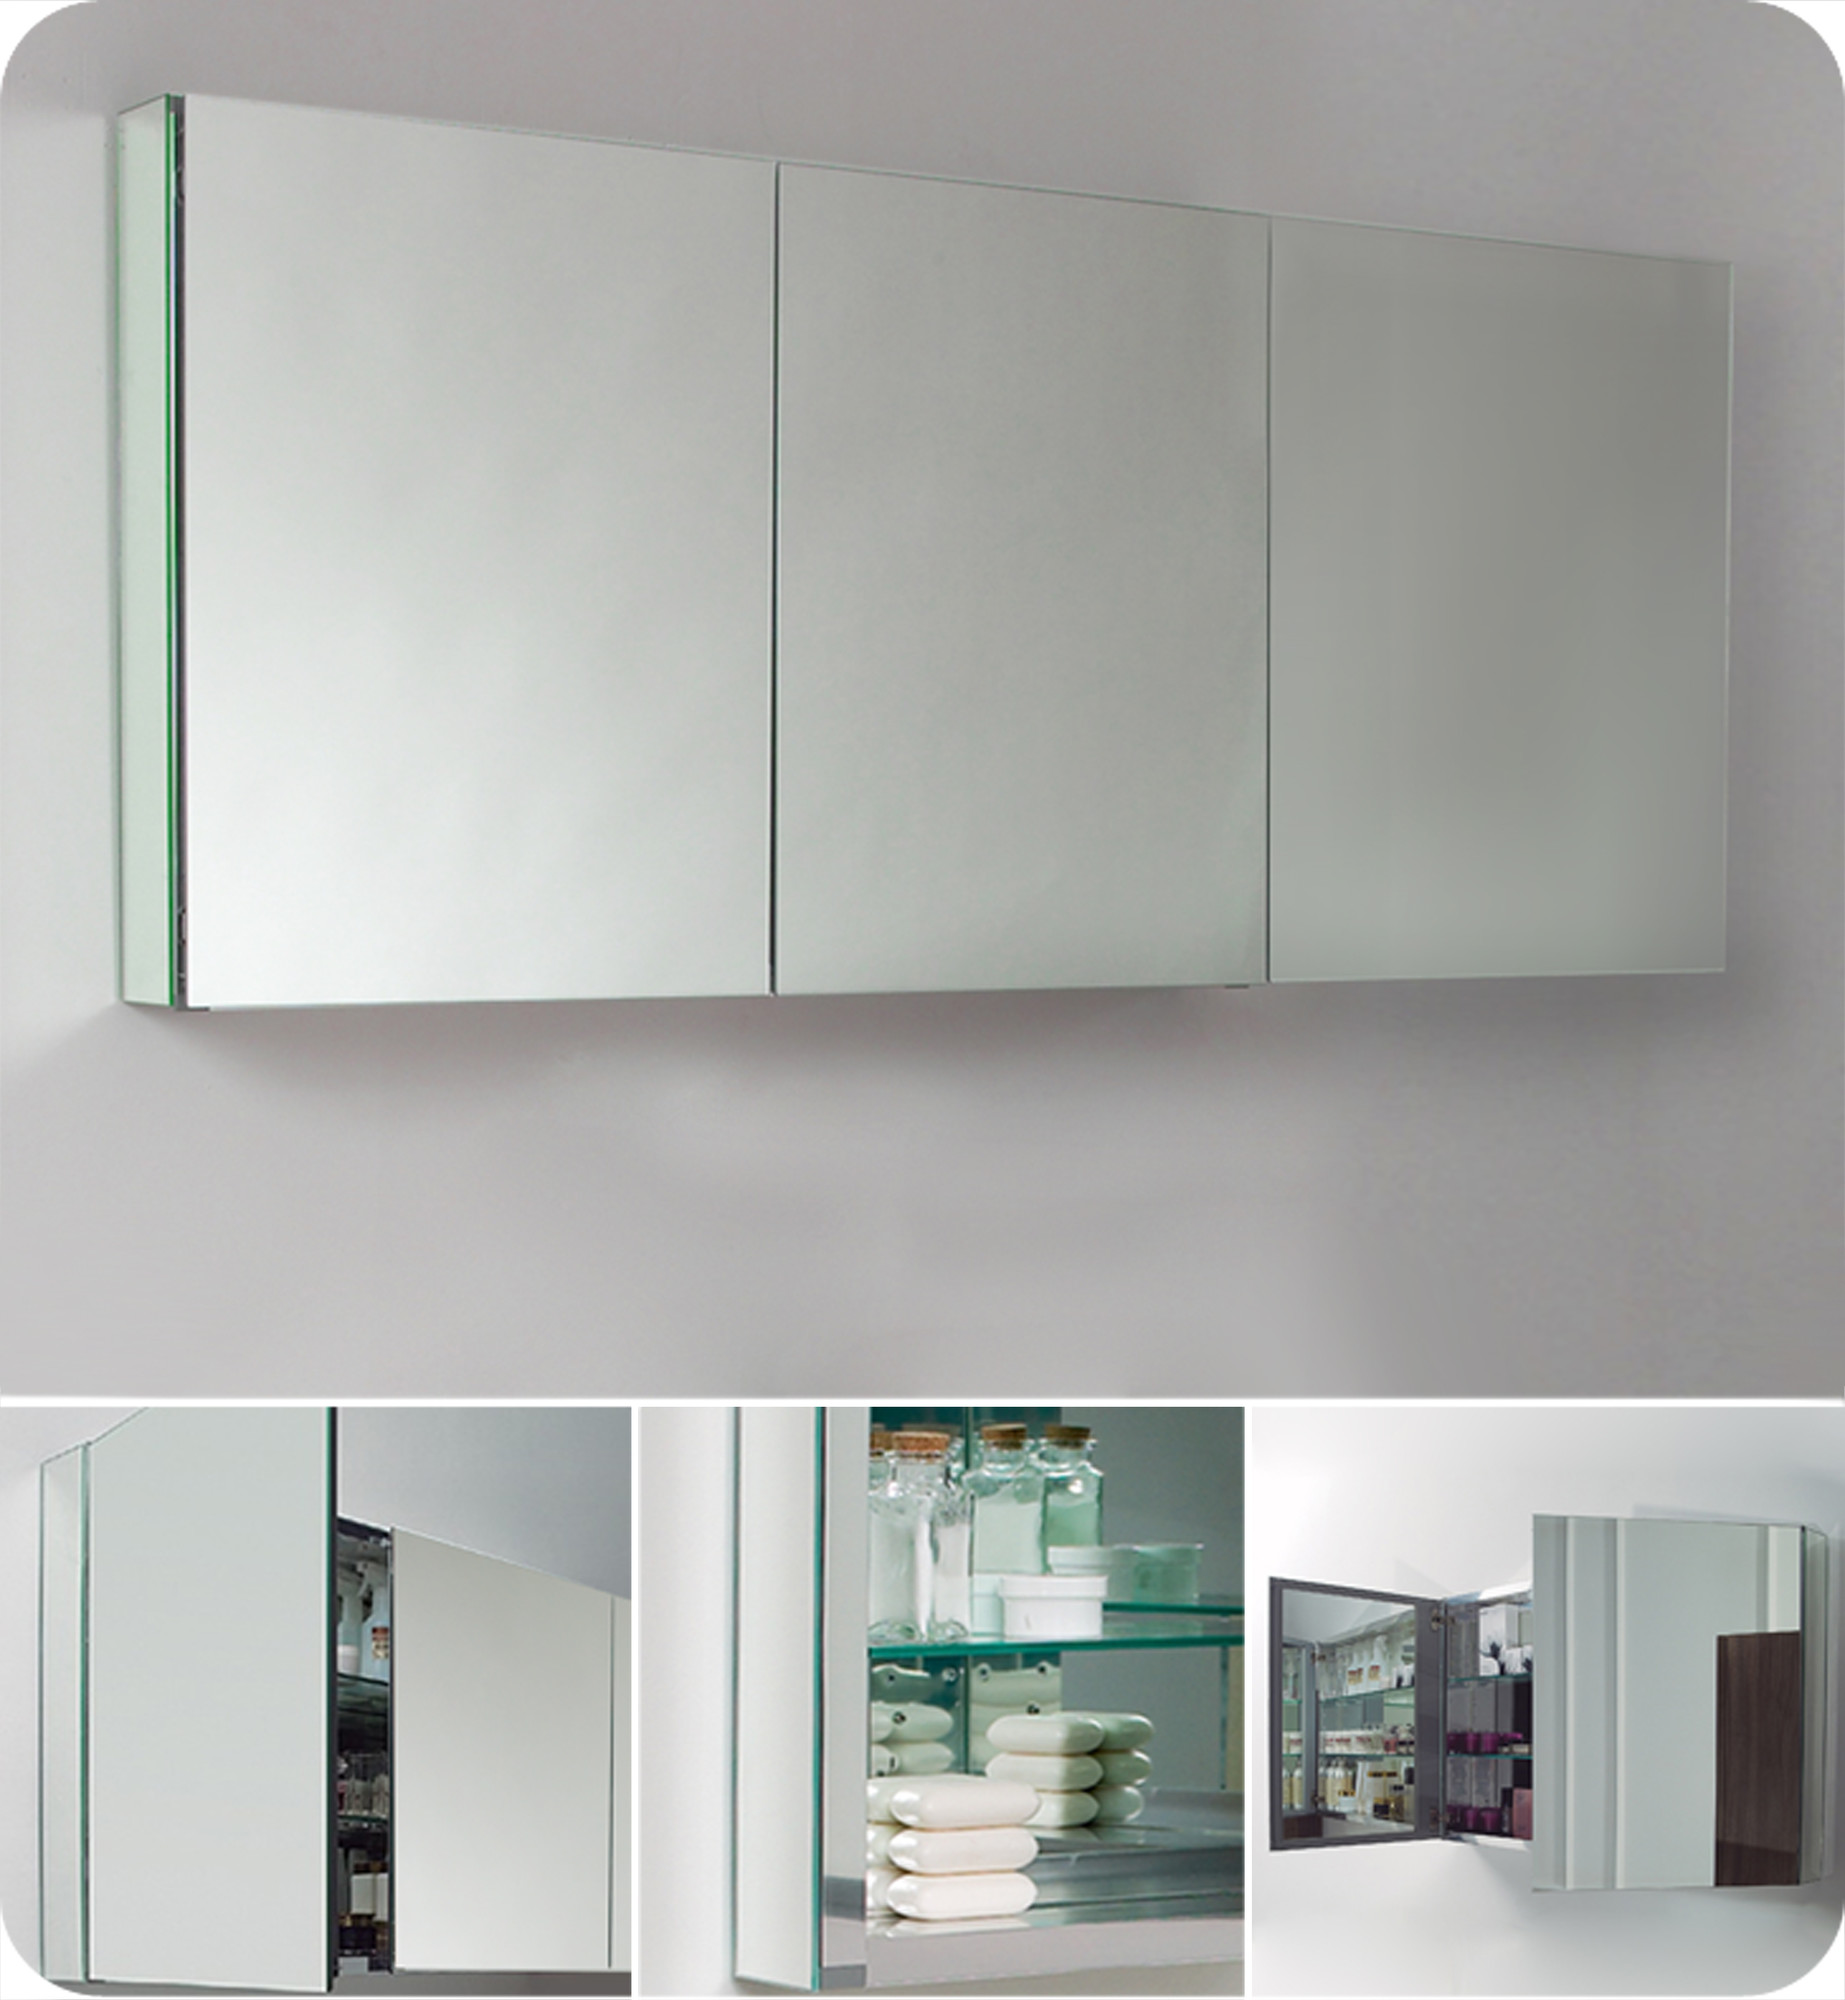 60 Inch Wide Bathroom Medicine Cabinet With Mirrors